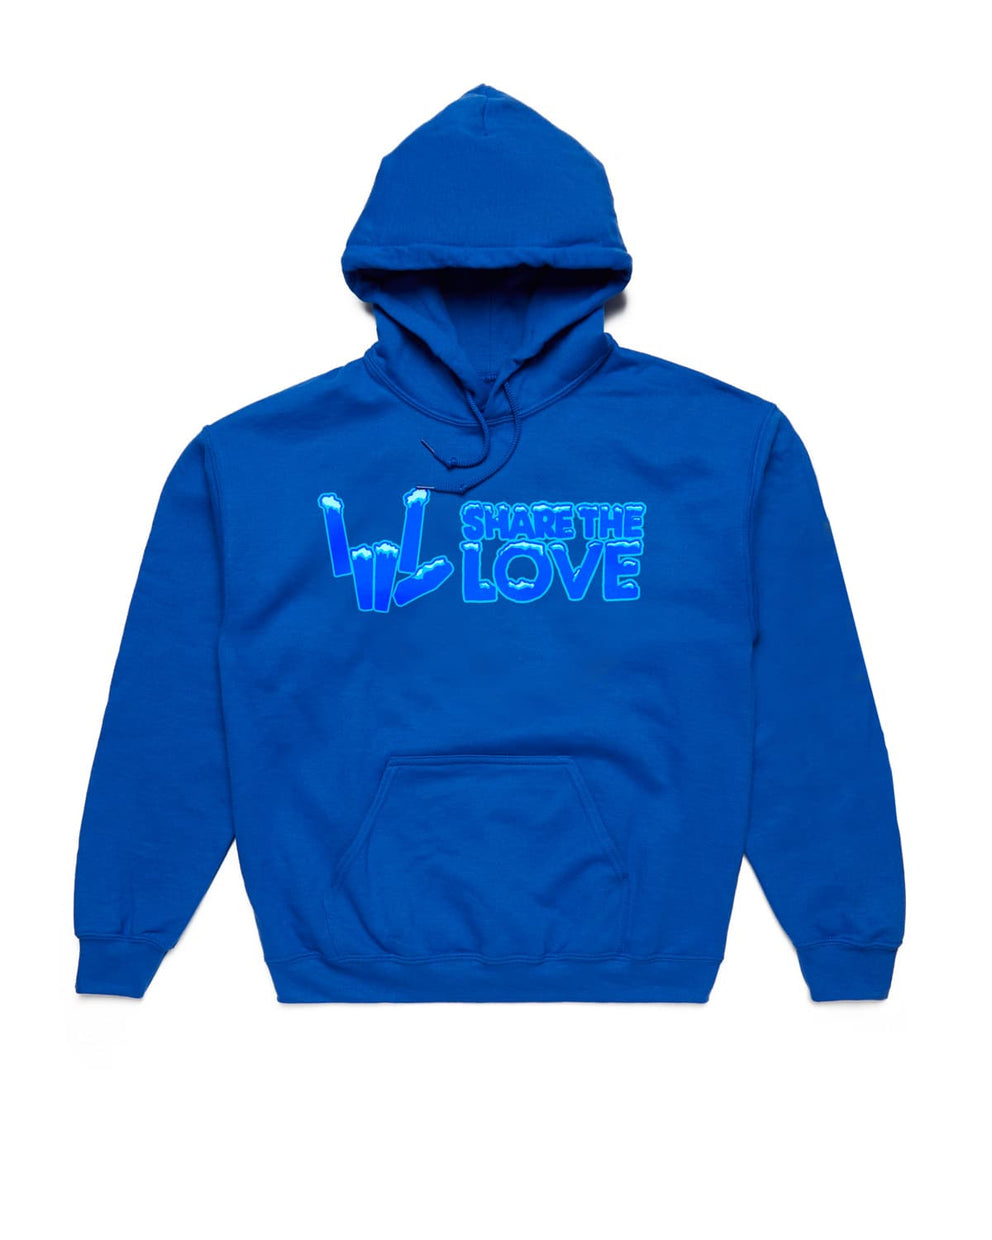 'Snowcaps' Share The Love Hoodie